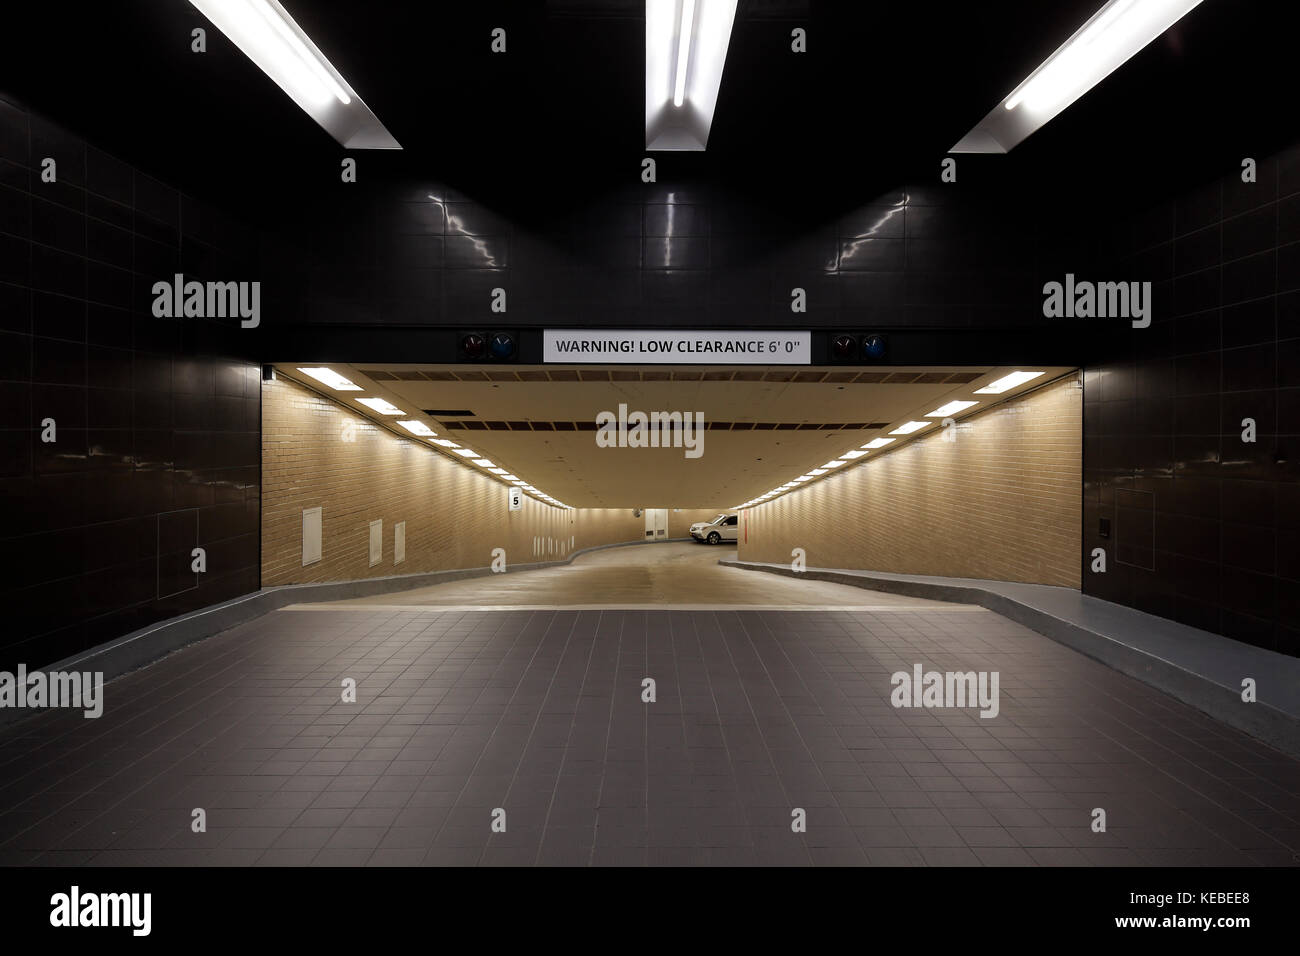 entrance with low clearance to an underground parking garage - Stock Image